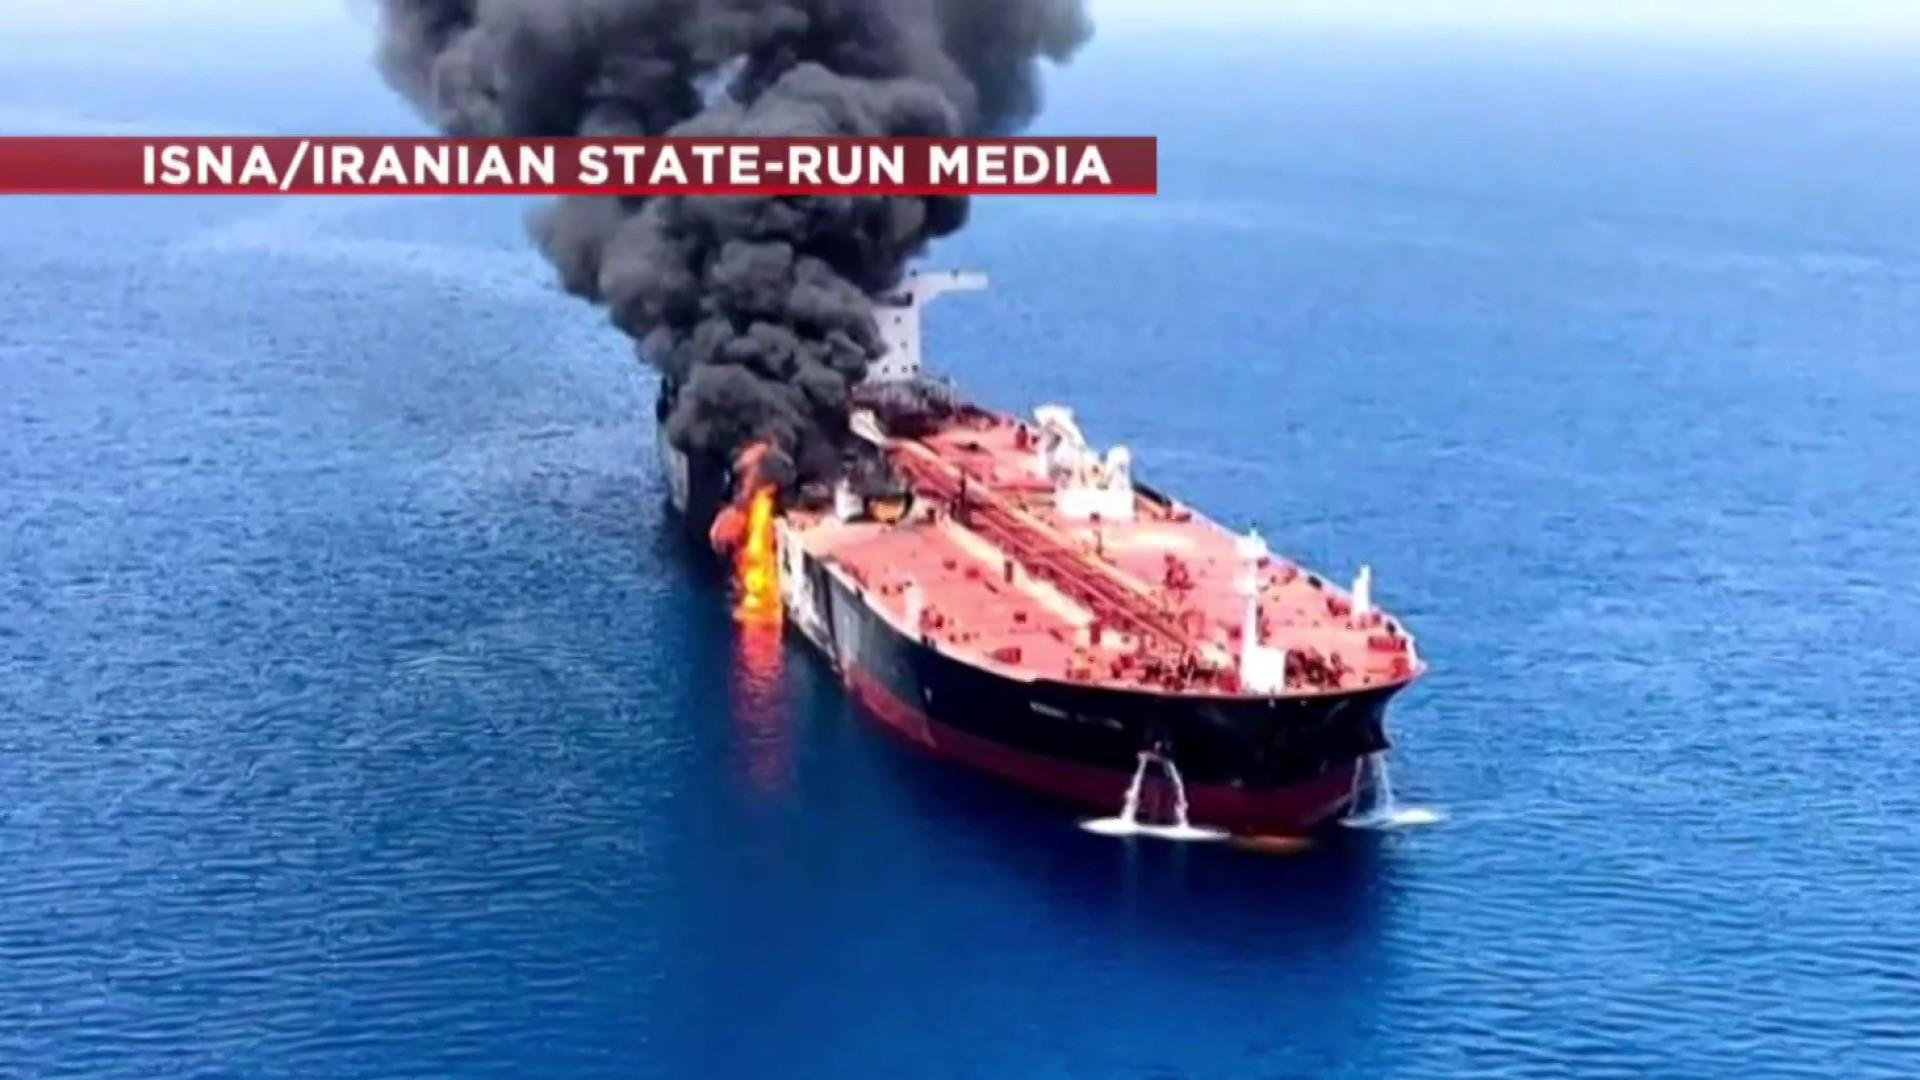 What we know about the tanker attacks in the Gulf of Oman